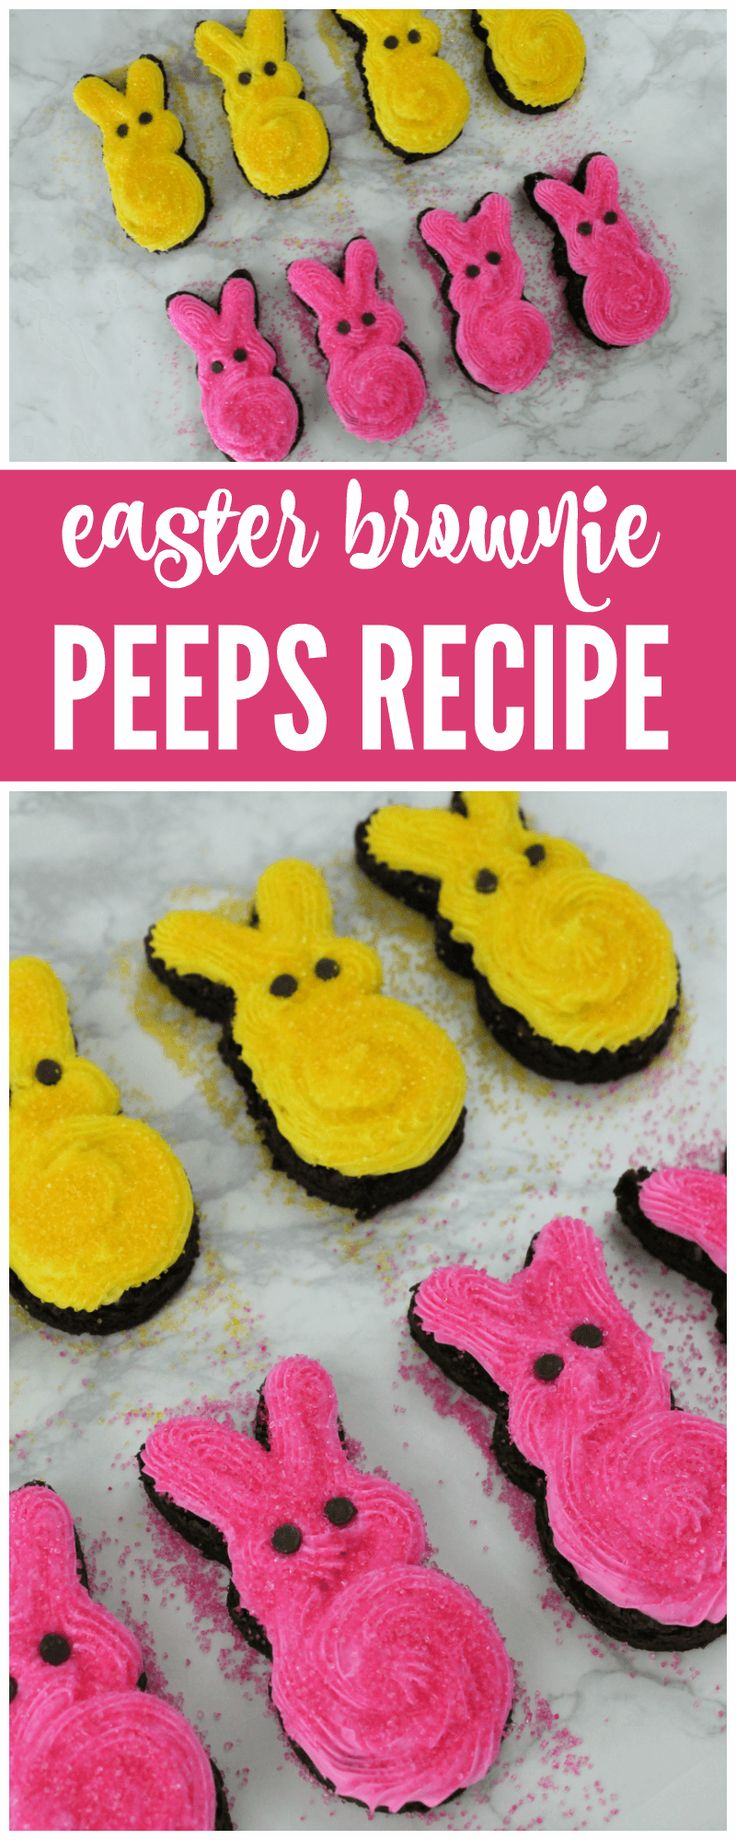 Easter Brownies Peep Recipe perfect for Class Parties, Easter Parties, Easter Desserts and more!